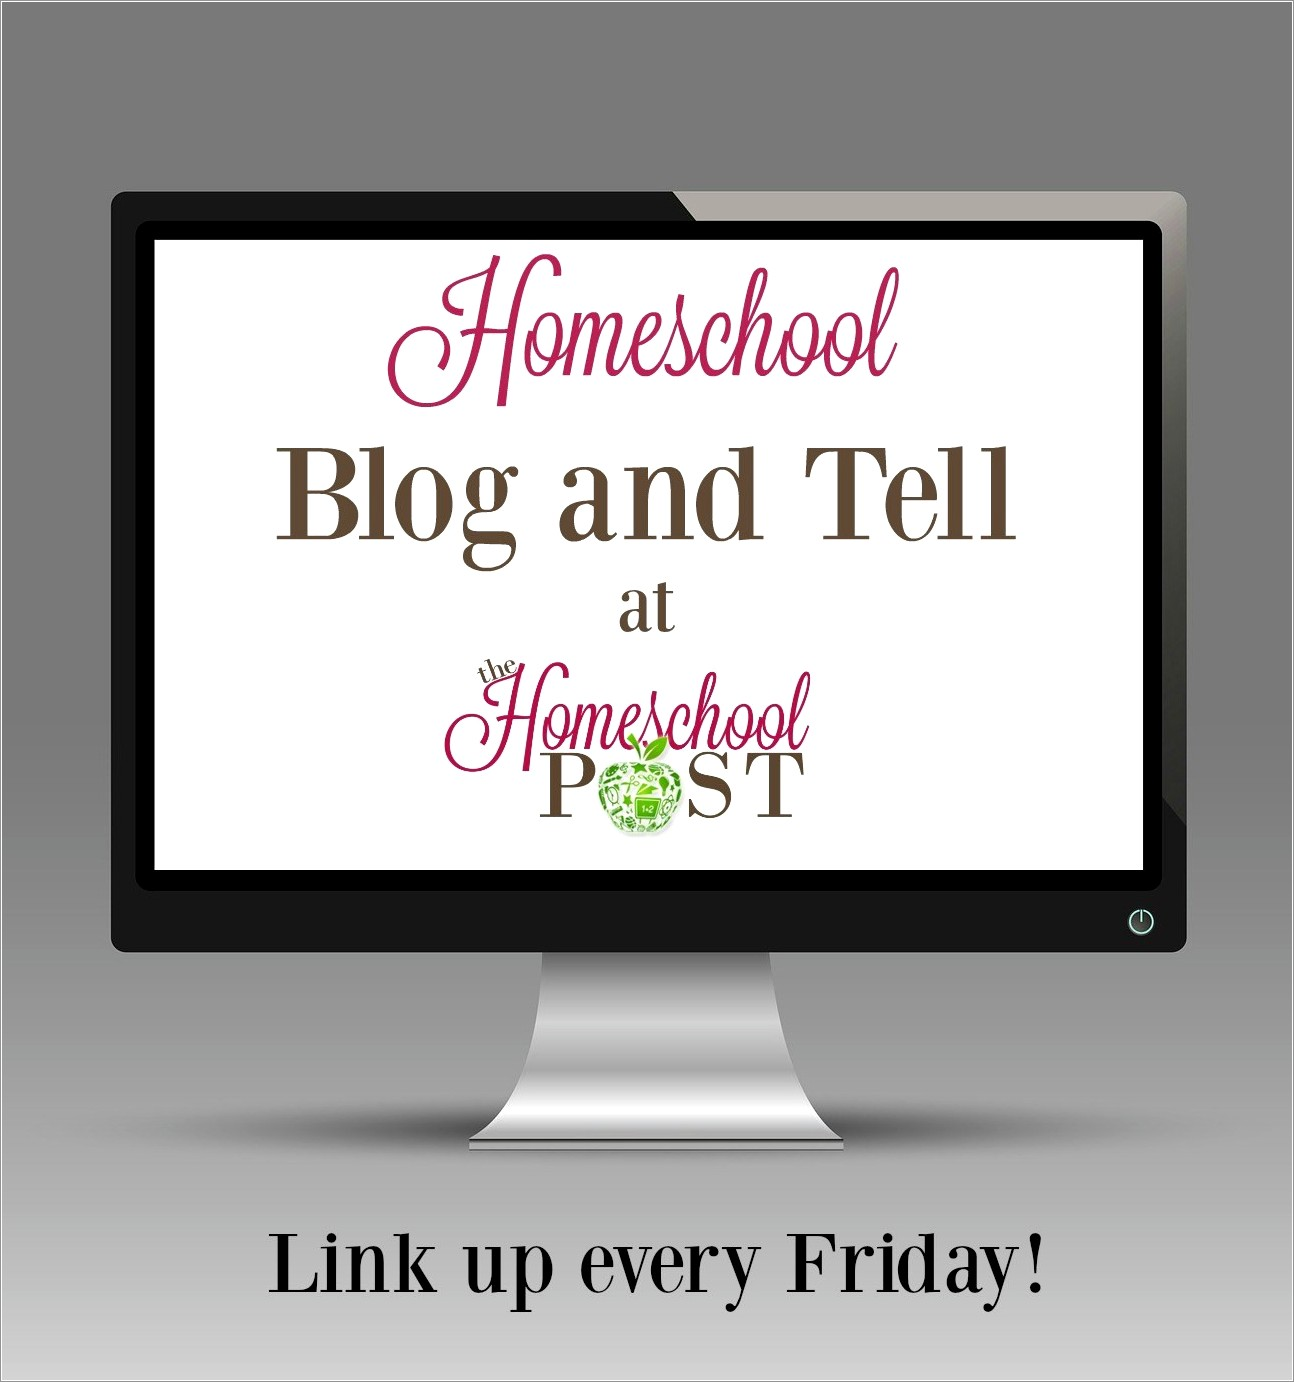 Letter Of Intent To Homeschool Nyc